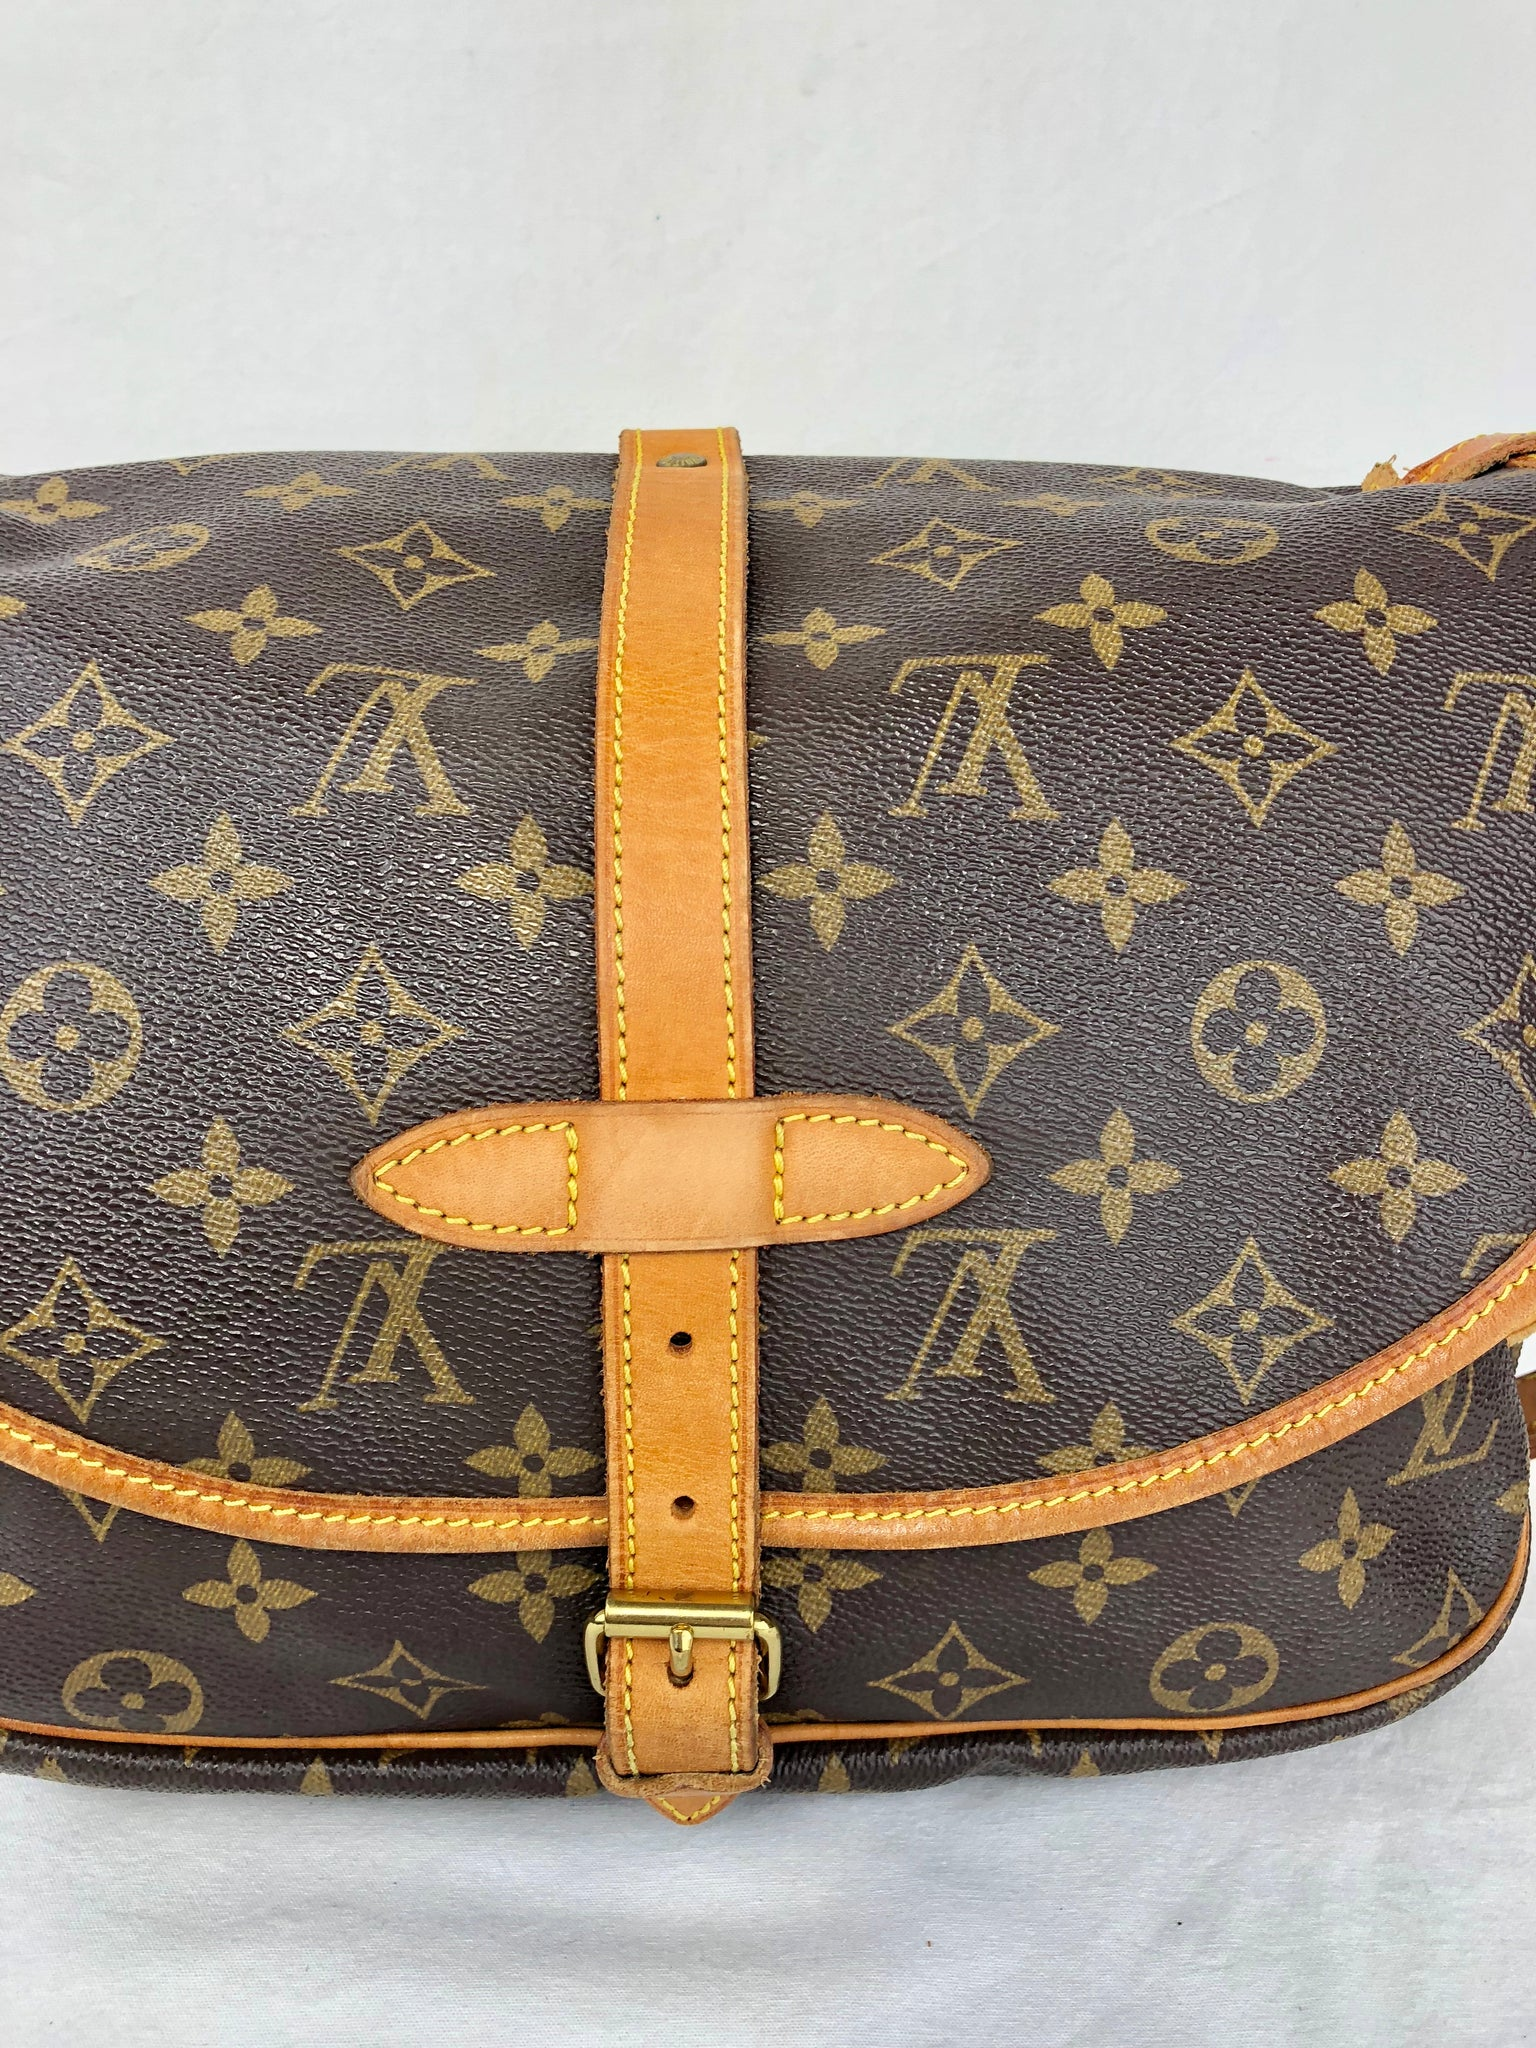 LOUIS VUITTON Monogram Saumur 30 Crossbody Bag (MB0958)